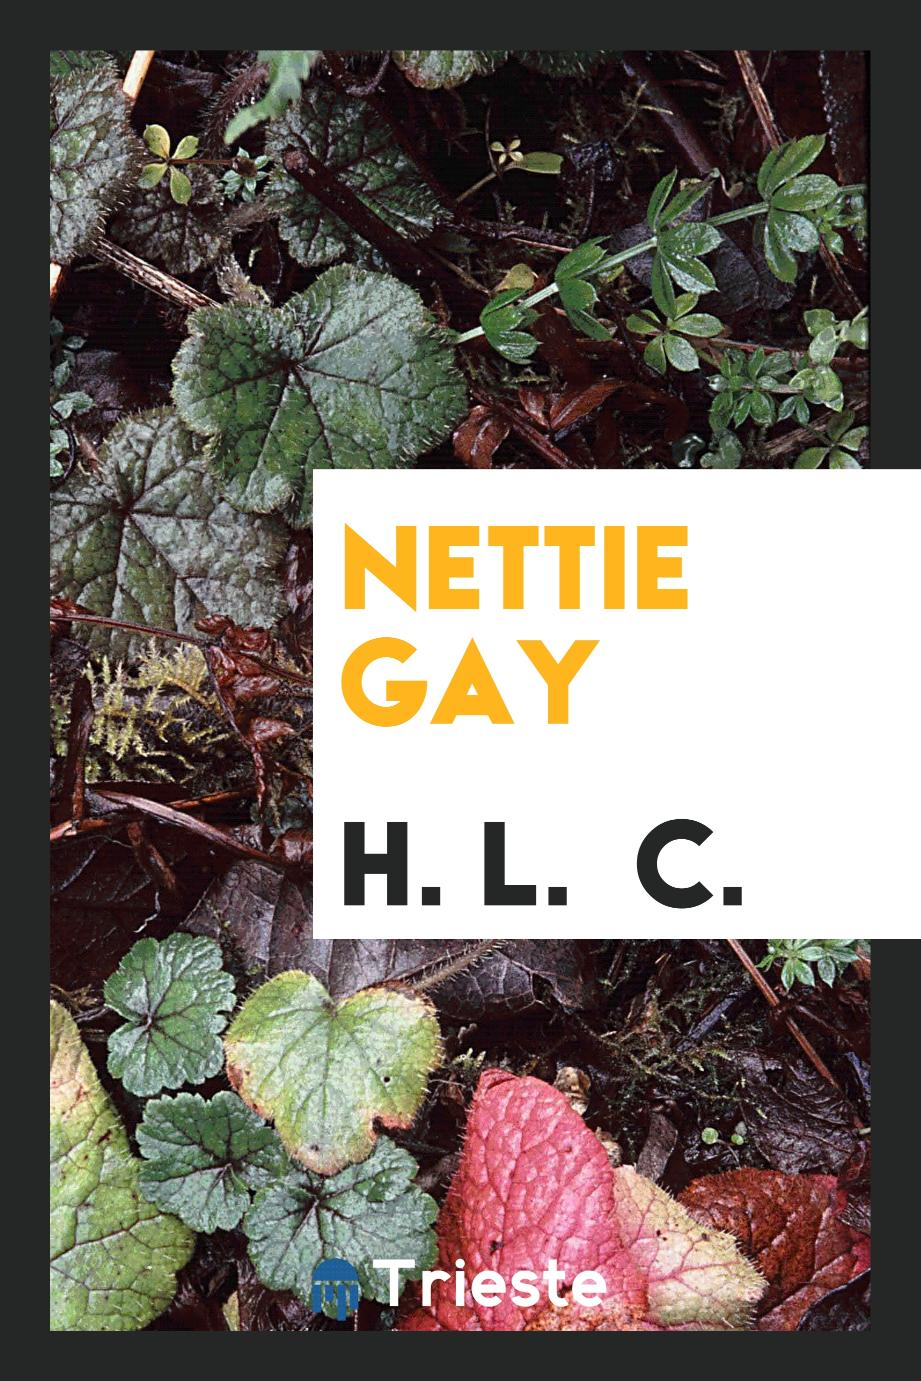 Nettie Gay